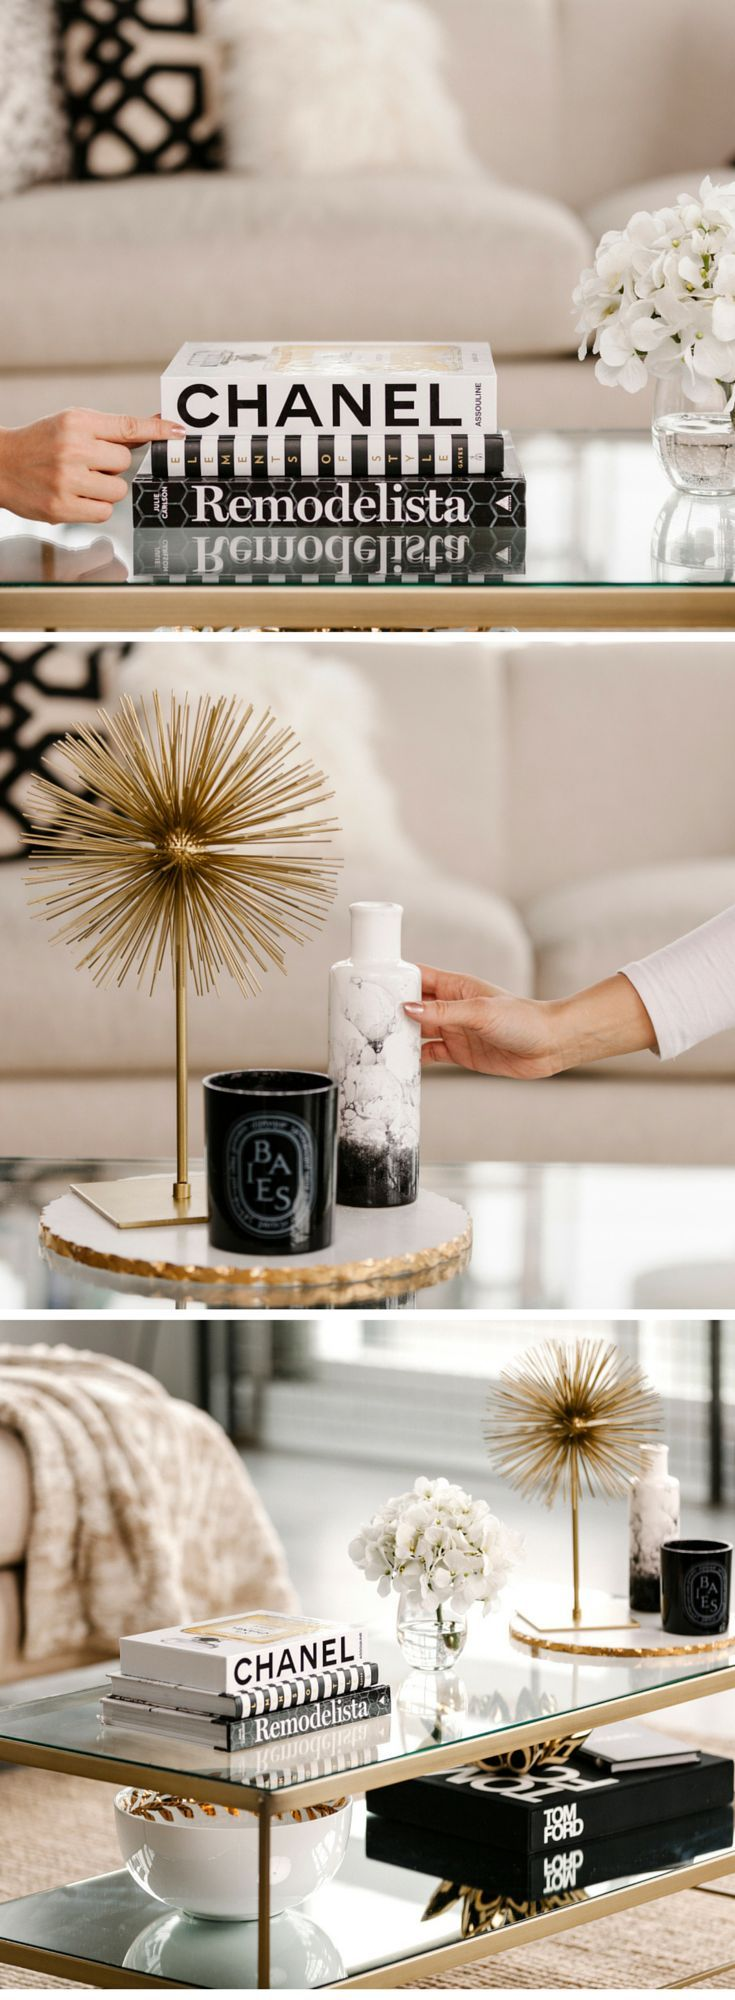 Black, gold and white elements styled perfectly to create an elegant coffee table arrangement. Love this look! #designinspiration